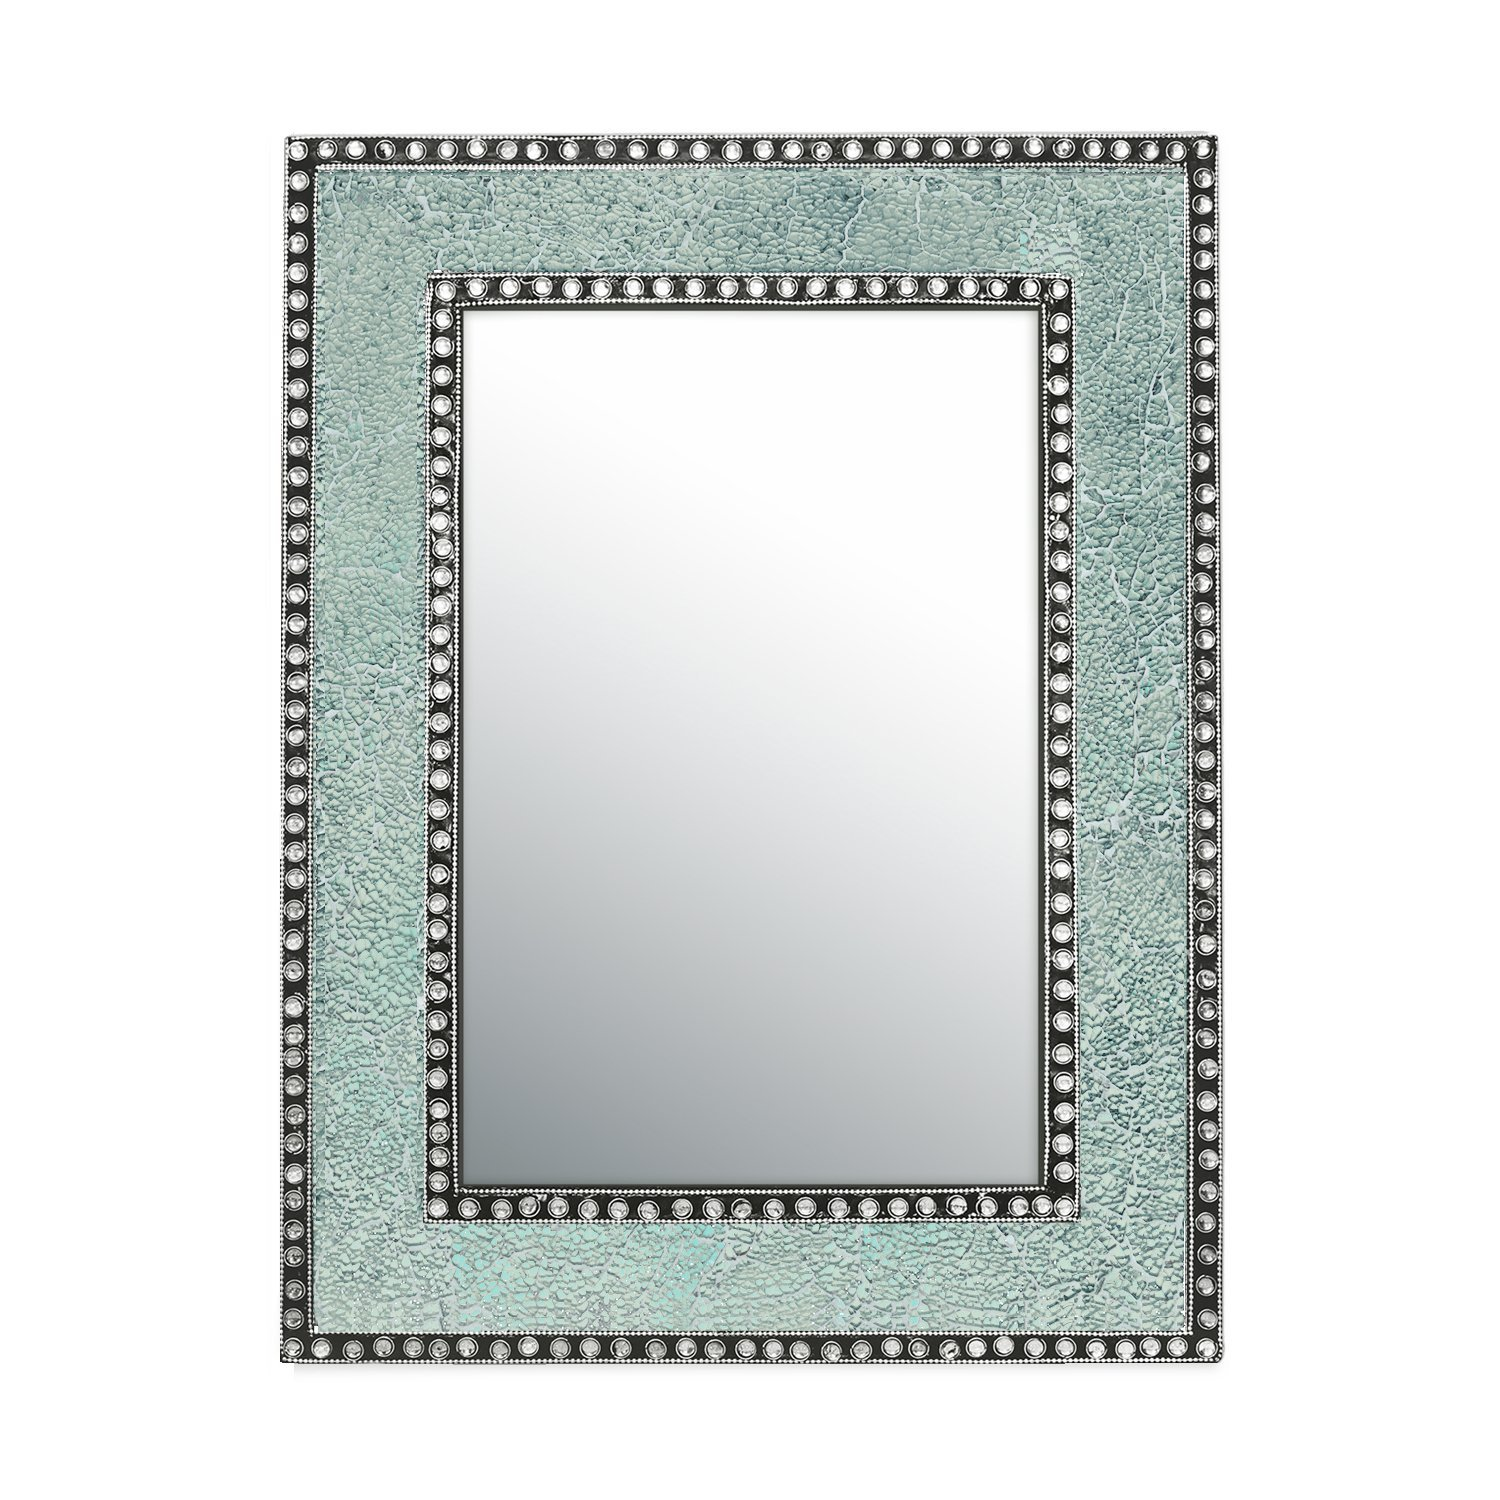 Unique Wall Mirrors Decor Decorative Wall Mirrors For Elegant Wall Decor Decorshore